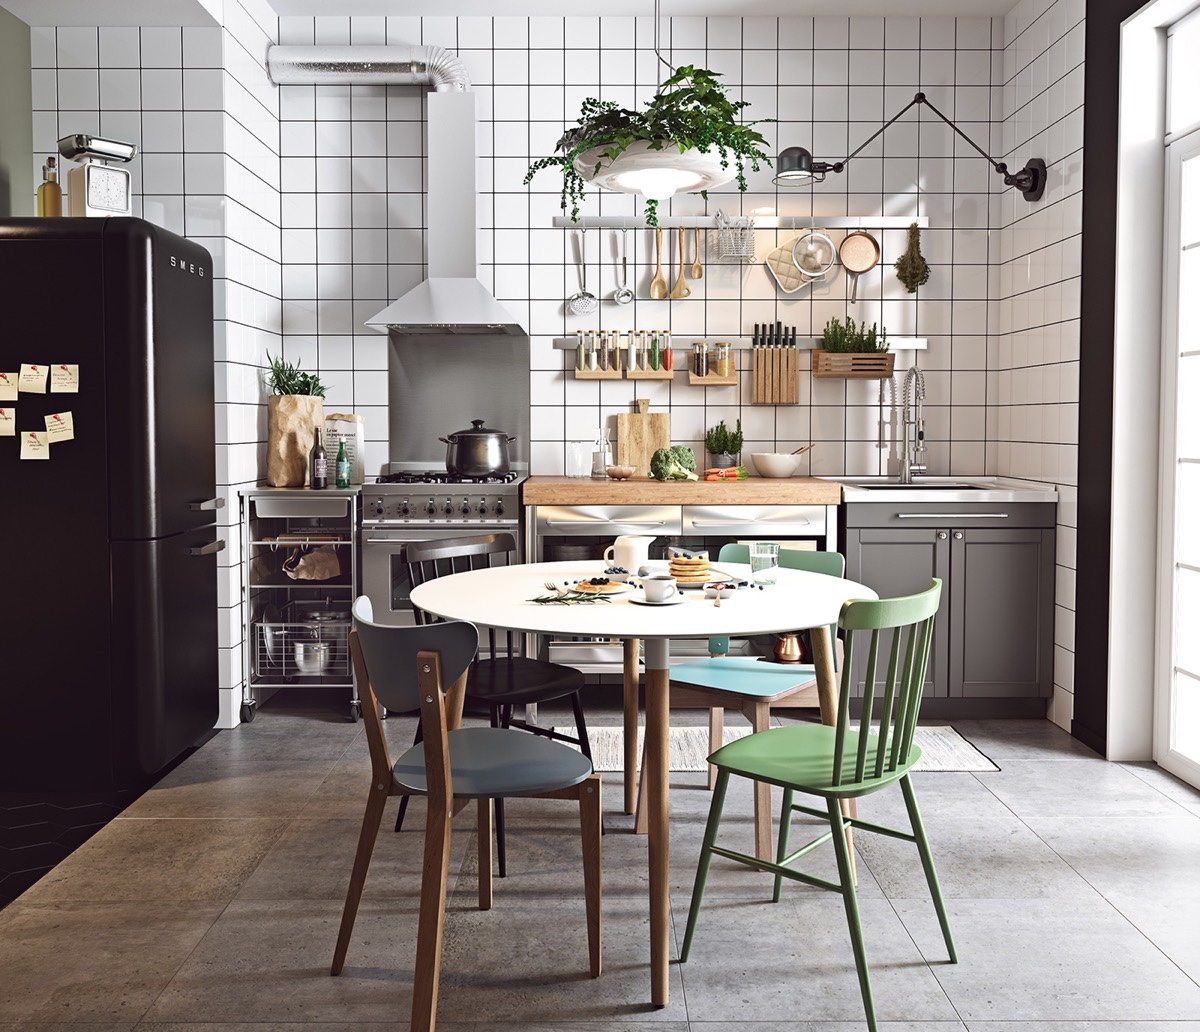 Scandinavian-kitchen-green-and-blue-chairs-black-and-white-tiles